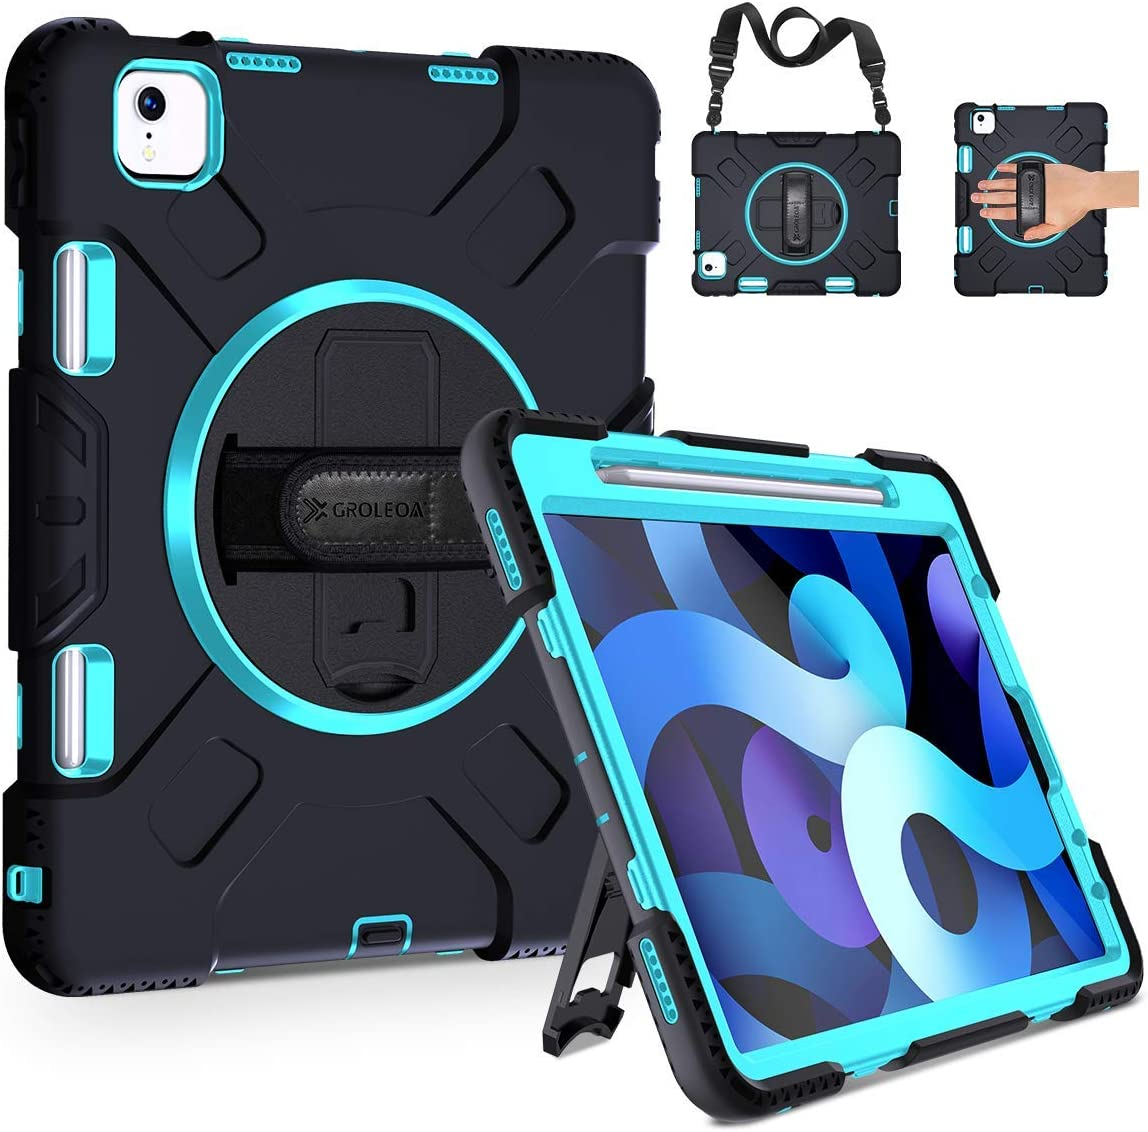 GROLEOA iPad Air 4th Generation Case, iPad Air 4 Case 10.9 inch 2020,Heavy Duty Shockproof Protective Cover with Pencil Holder Rotating Stand Hand Shoulder Strap for iPad Pro 11 inch 2020/2018